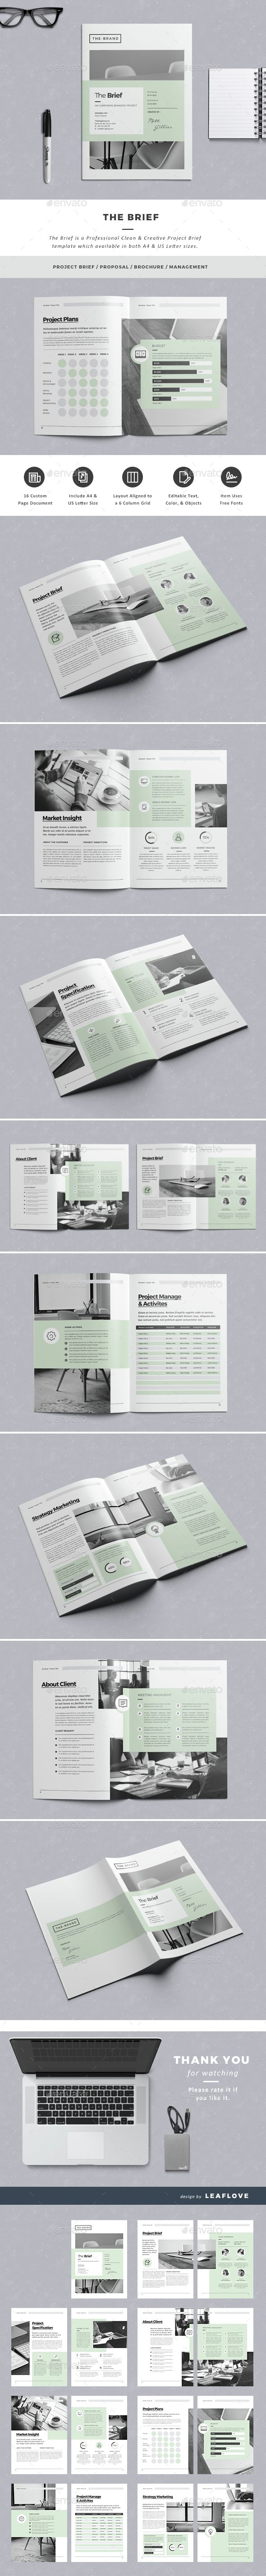 The Brief Brochure Template InDesign INDD. Download here: http ...